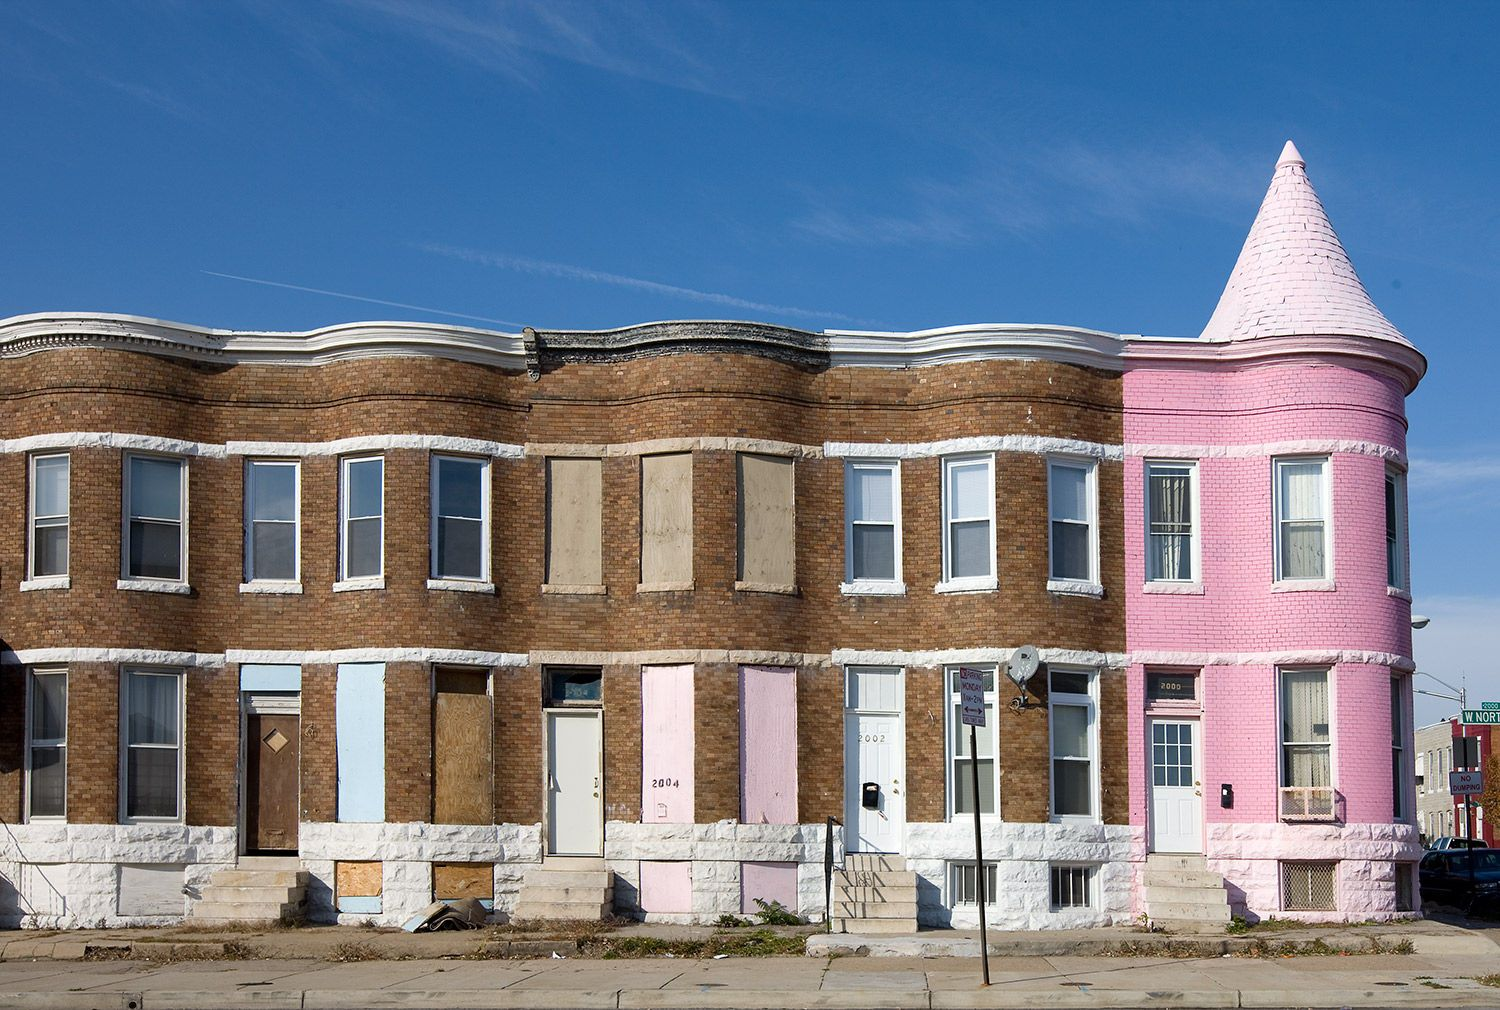 Row Houses In Baltimore Md : Baltimore abandoned row houses google search smart